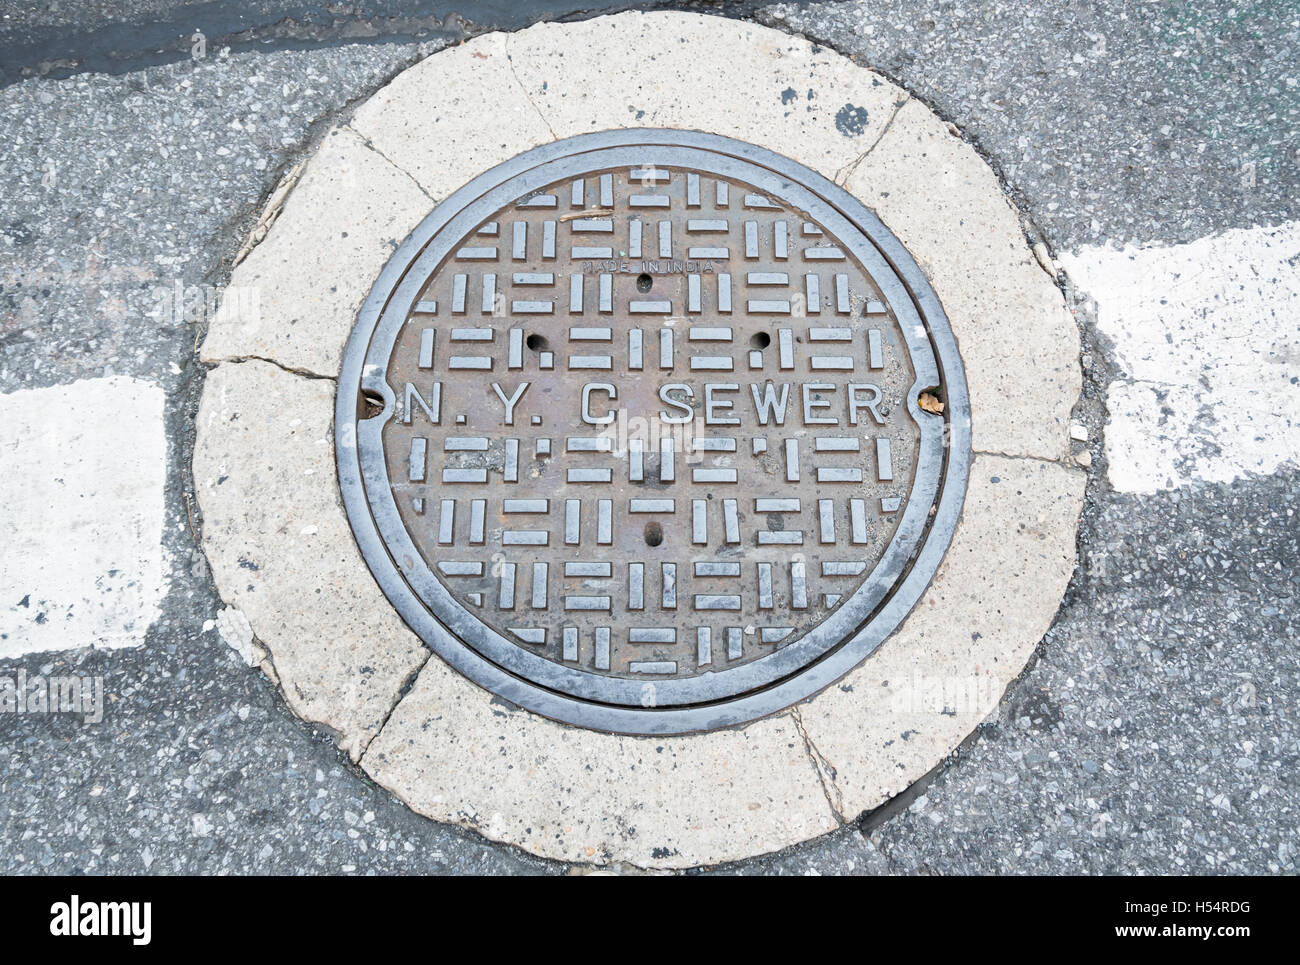 New York City NYC sewer cover / manhole lid in the road - Stock Image